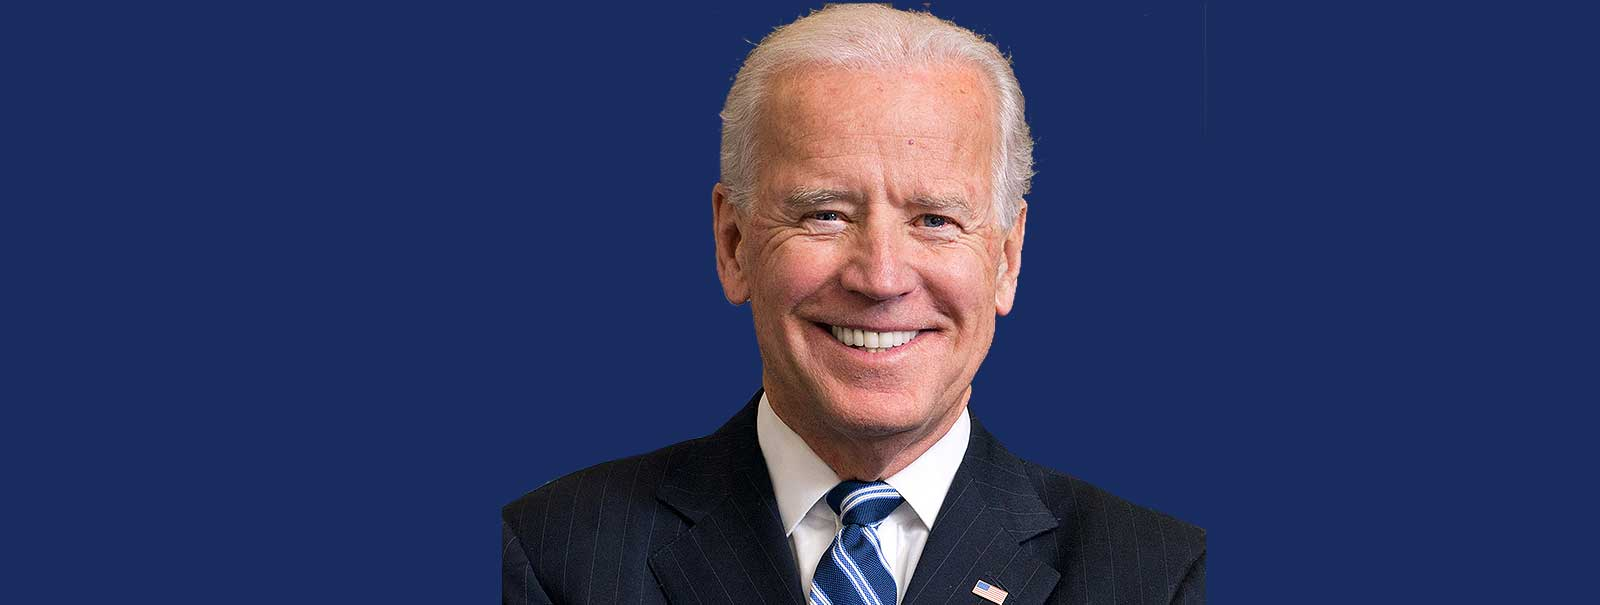 More Info - AN EVENING WITH VICE PRESIDENT JOE BIDEN